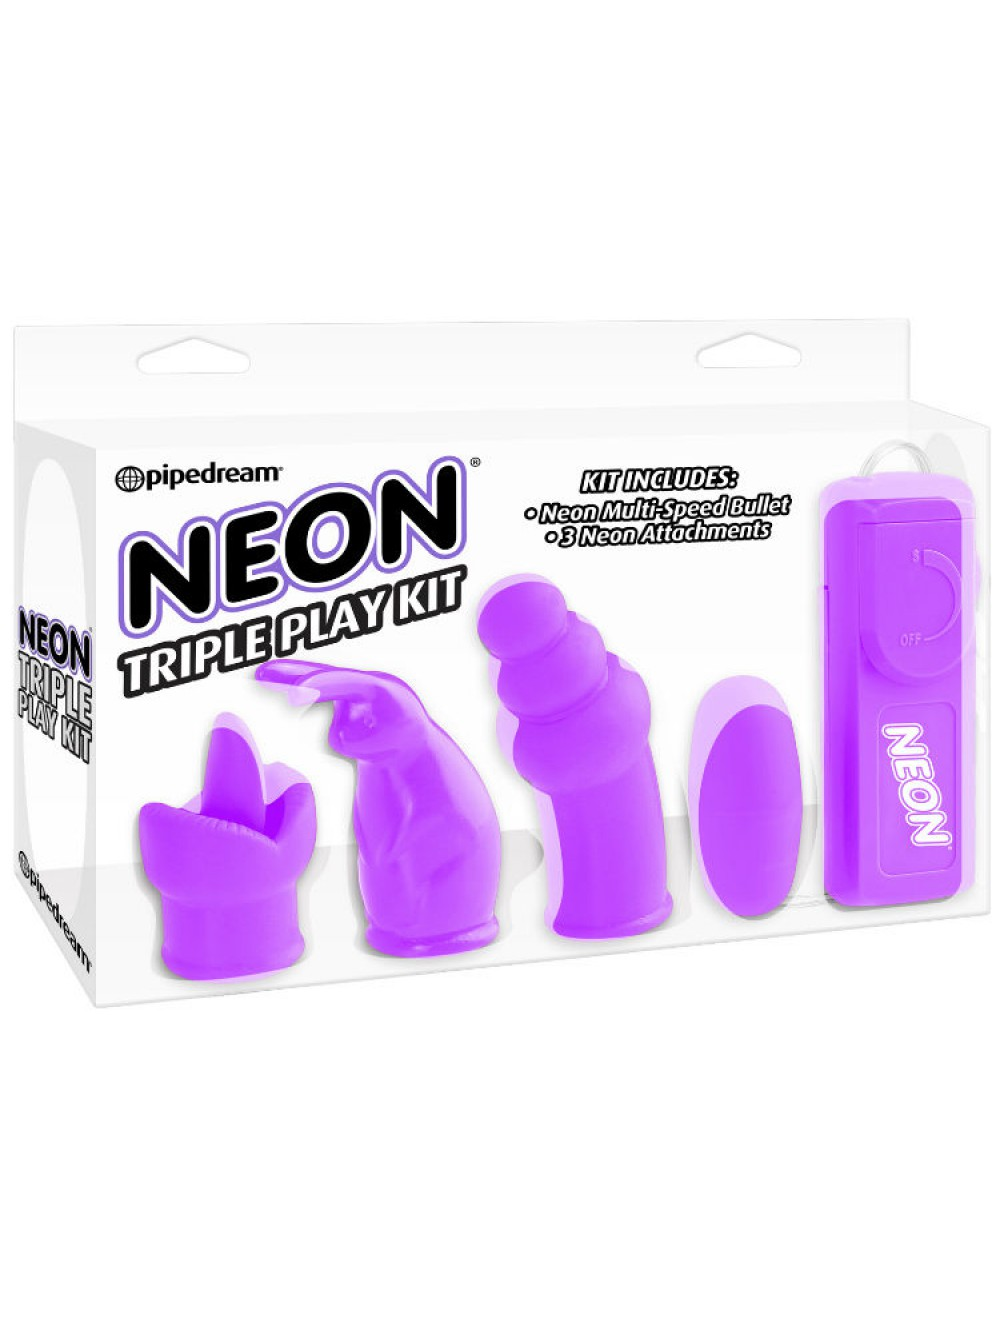 NEON TRIPLE PLAY KIT PURPLE